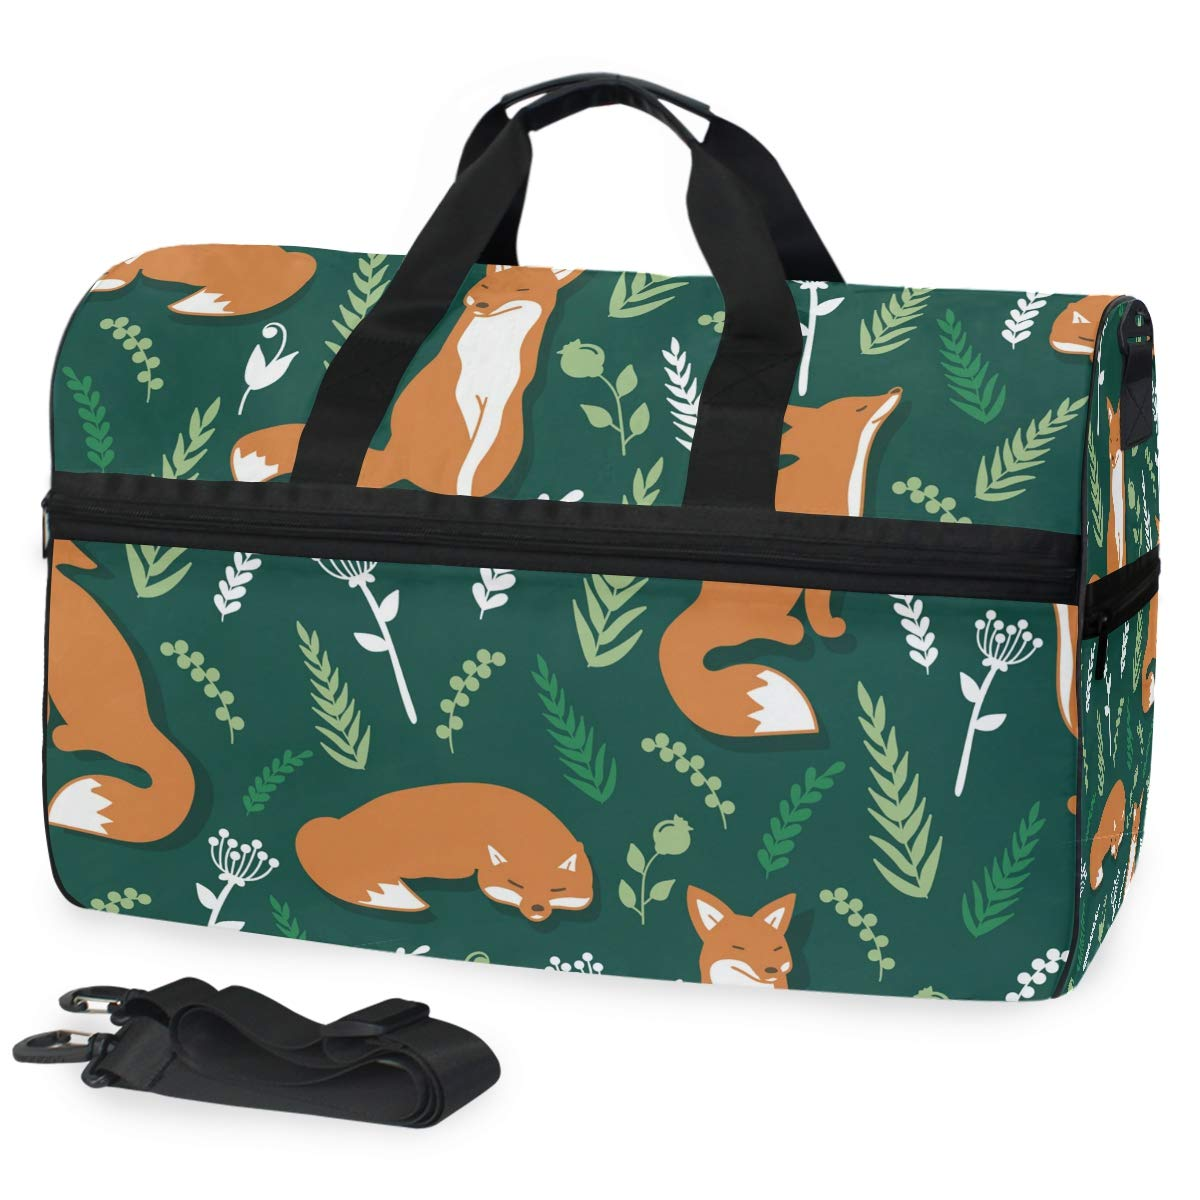 Travel Duffel Bag Foxes And Flowers Floral Waterproof Lightweight Luggage bag for Sports Gym Vacation